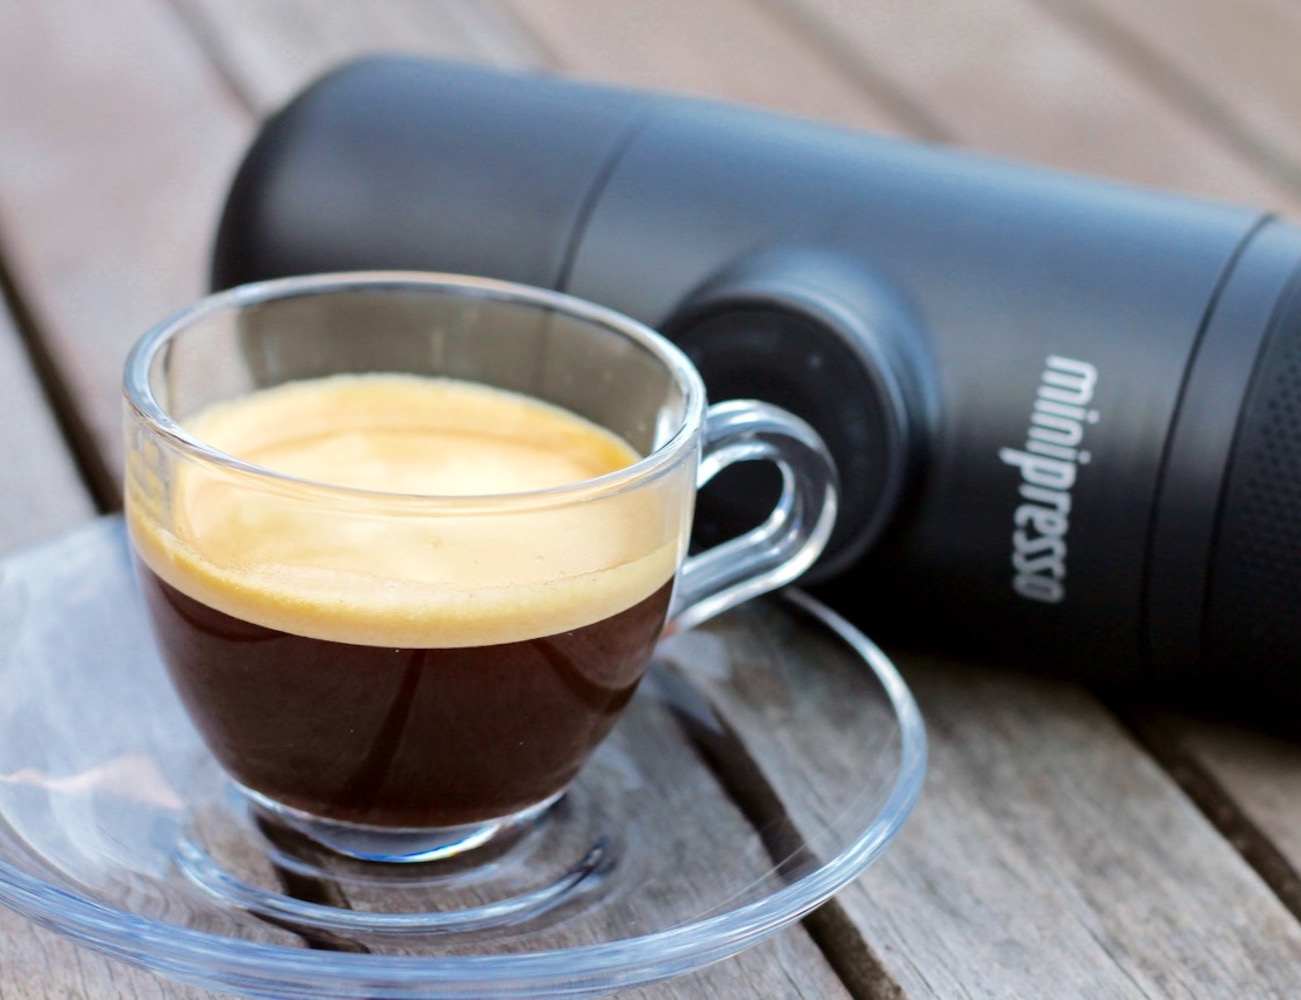 MiniPresso Handheld Espresso Maker by Wacaco Company requires no batteries or charging